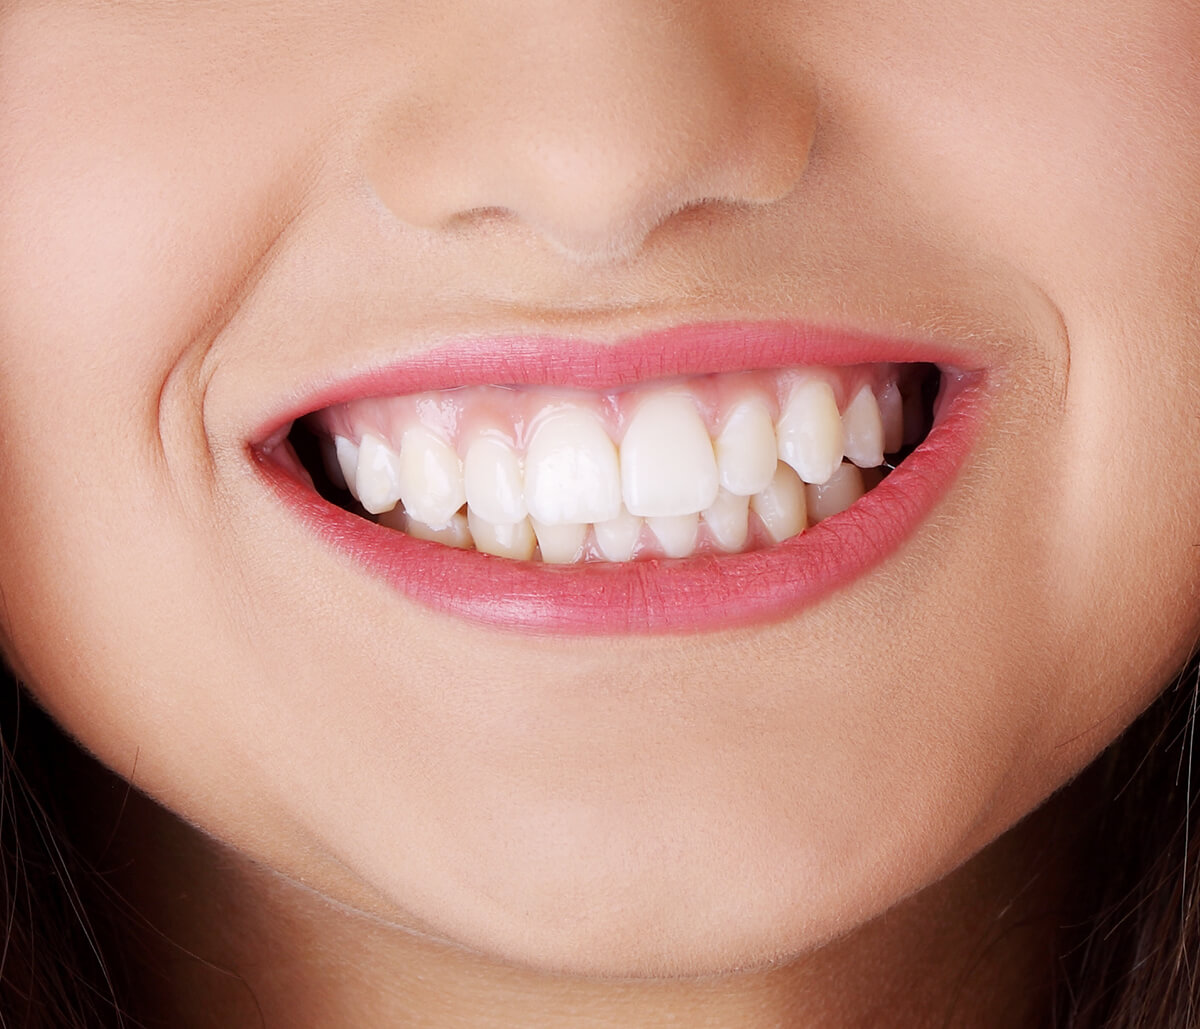 Professional Dental Whitening Treatment for Teeth Fort Worth TX Area